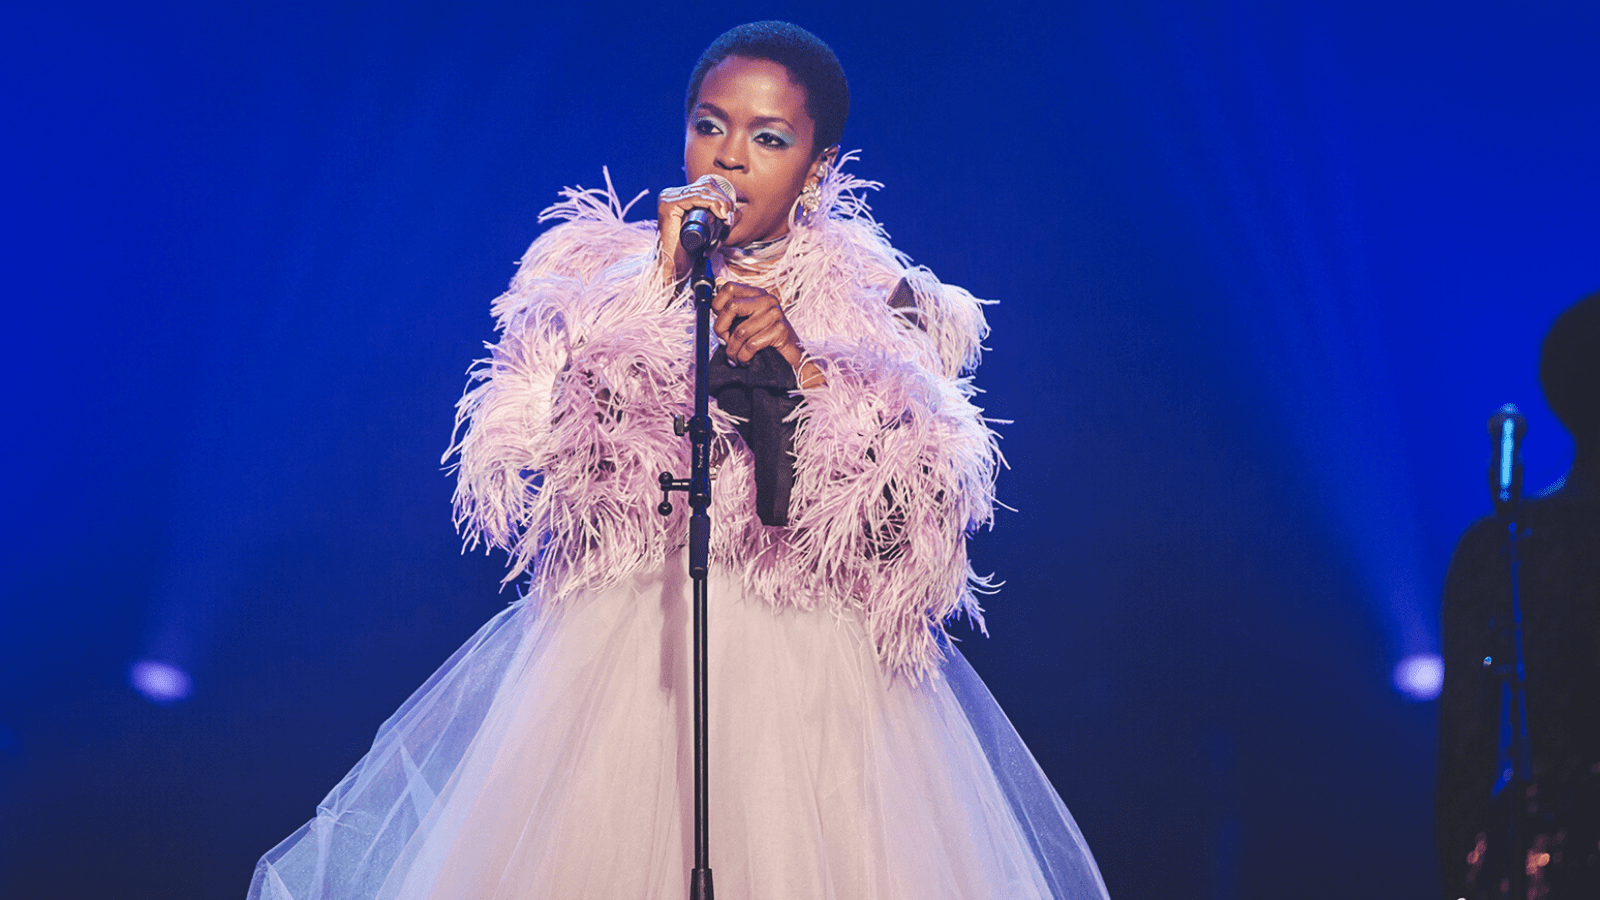 Lauryn Hill Tour 2020.Lauryn Hill Tickets And Tour Dates Lauryn Hill Concert